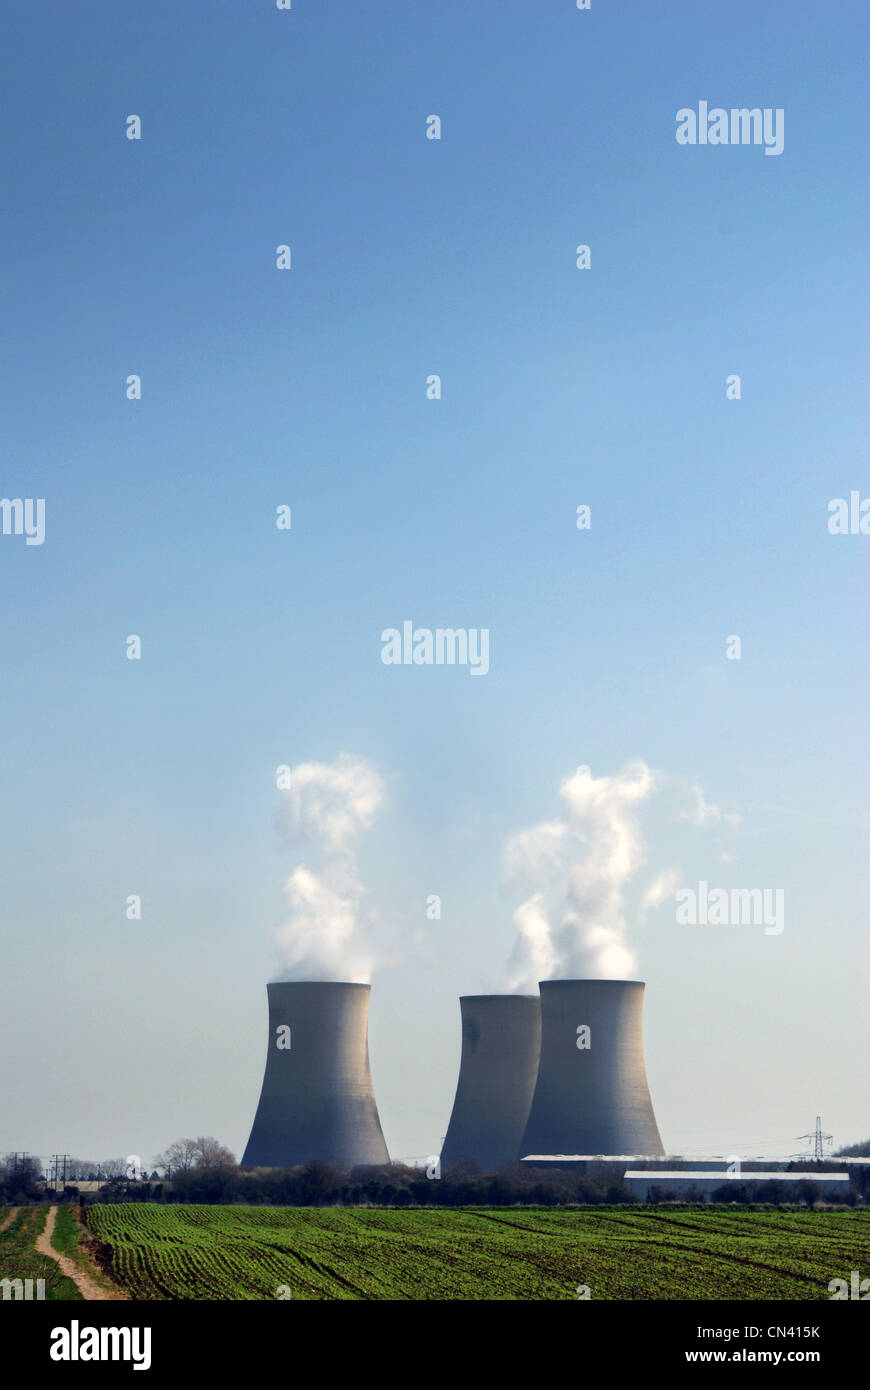 Three cooling towers venting water vapor up into empty blue sky, field in the foreground, nuclear power plant. - Stock Image